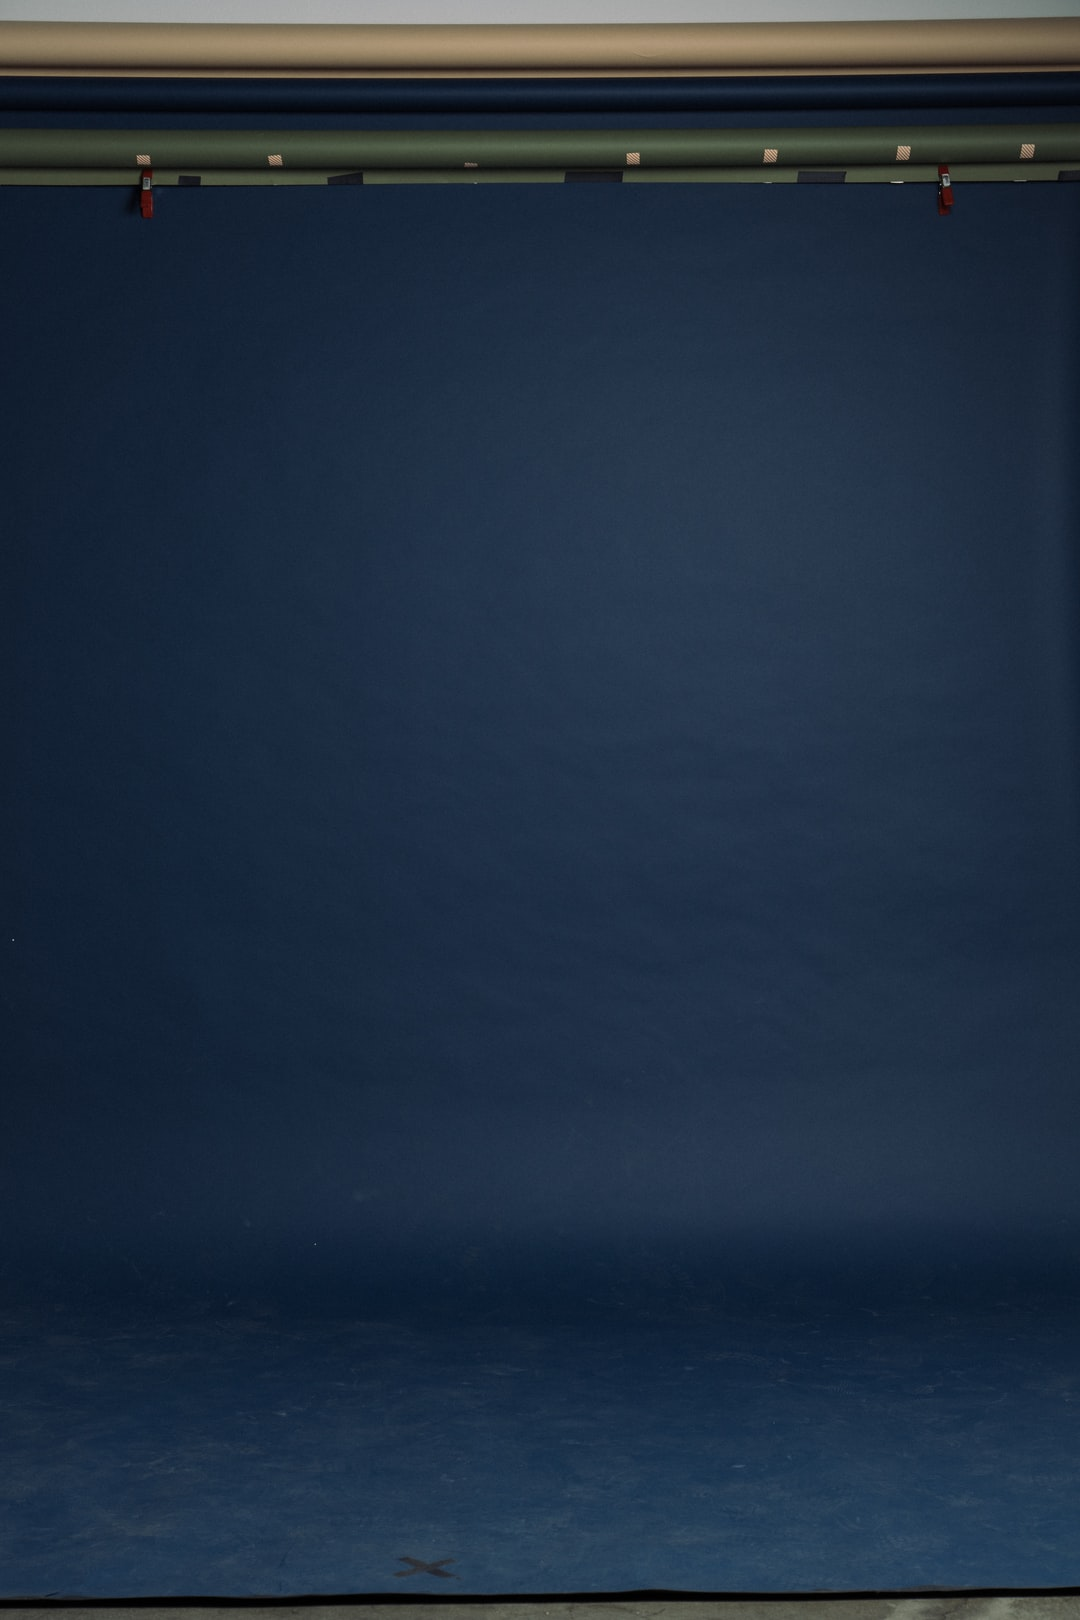 Blue seamless backdrop background plate Shot by Chase Wilson http://agroism.com